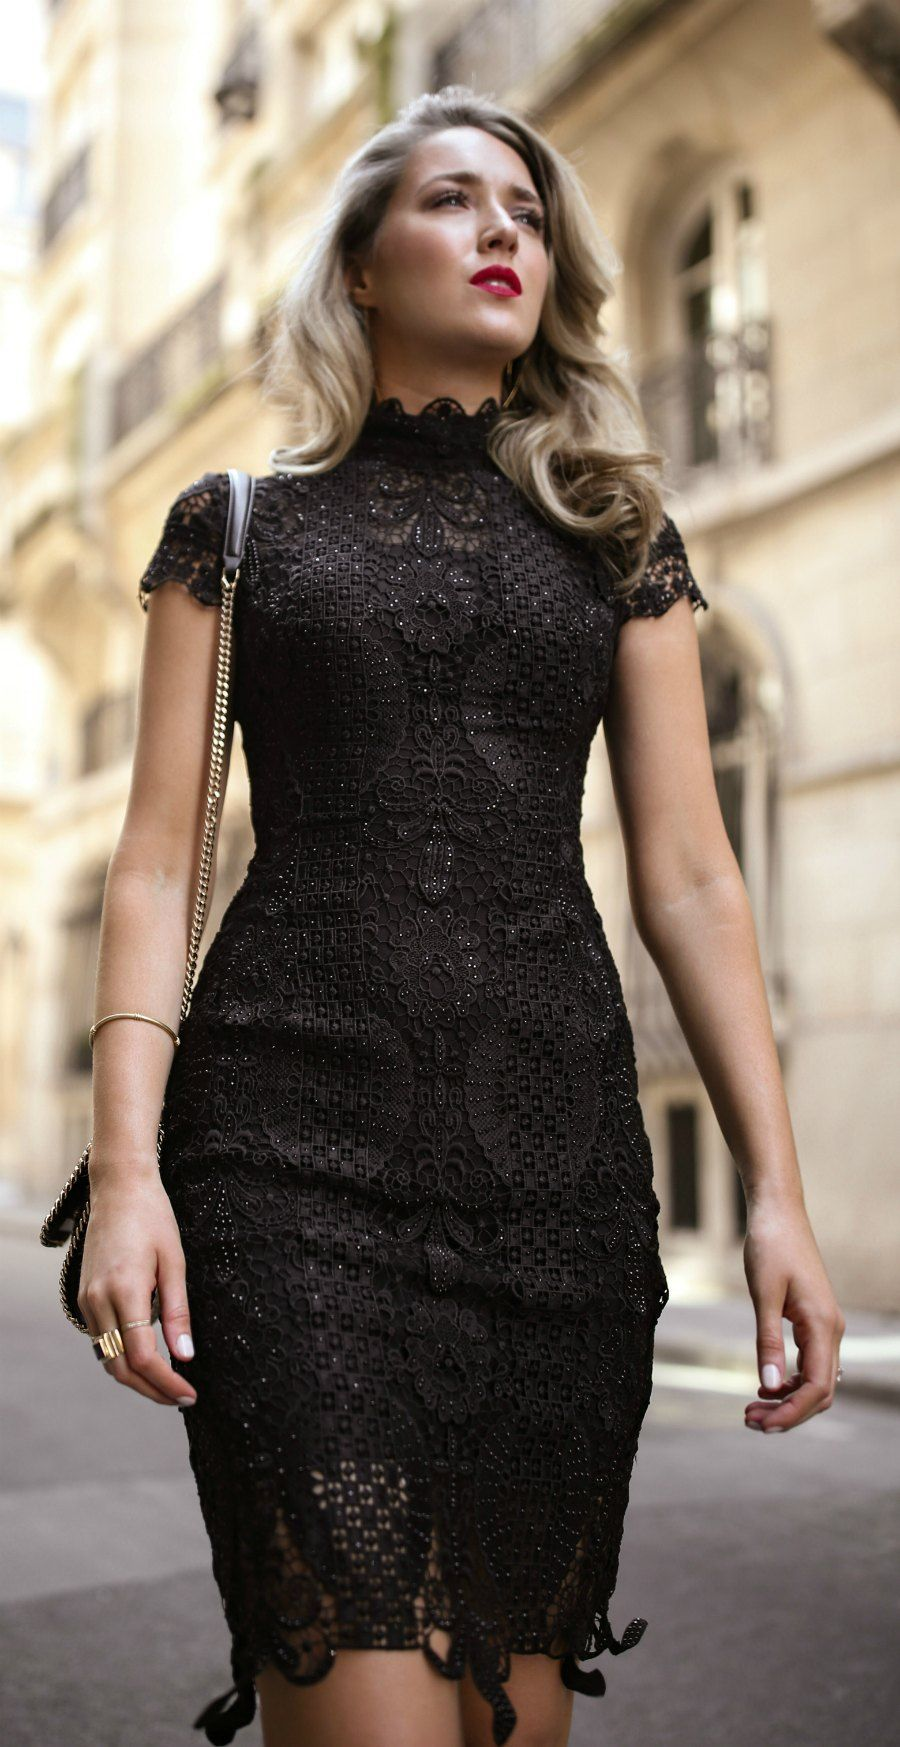 30 Dresses In 30 Days Day 11 What To Wear To A Cocktail Attire Wedding Black Lace Shor Black Dresses Classy Cocktail Wedding Attire Cocktail Dress Classy [ 1747 x 900 Pixel ]